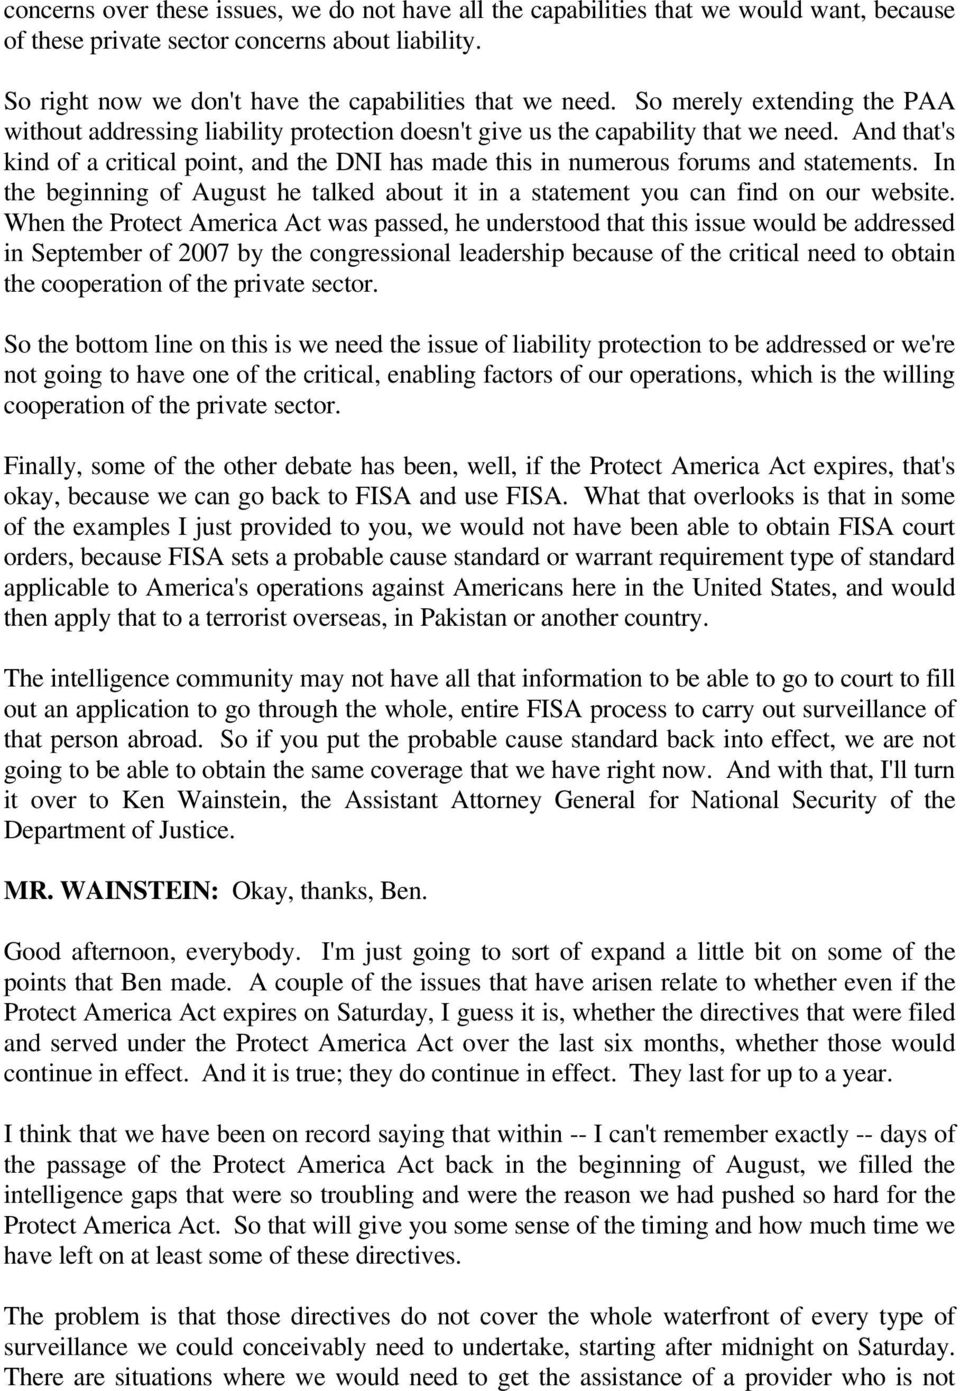 And that's kind of a critical point, and the DNI has made this in numerous forums and statements. In the beginning of August he talked about it in a statement you can find on our website.